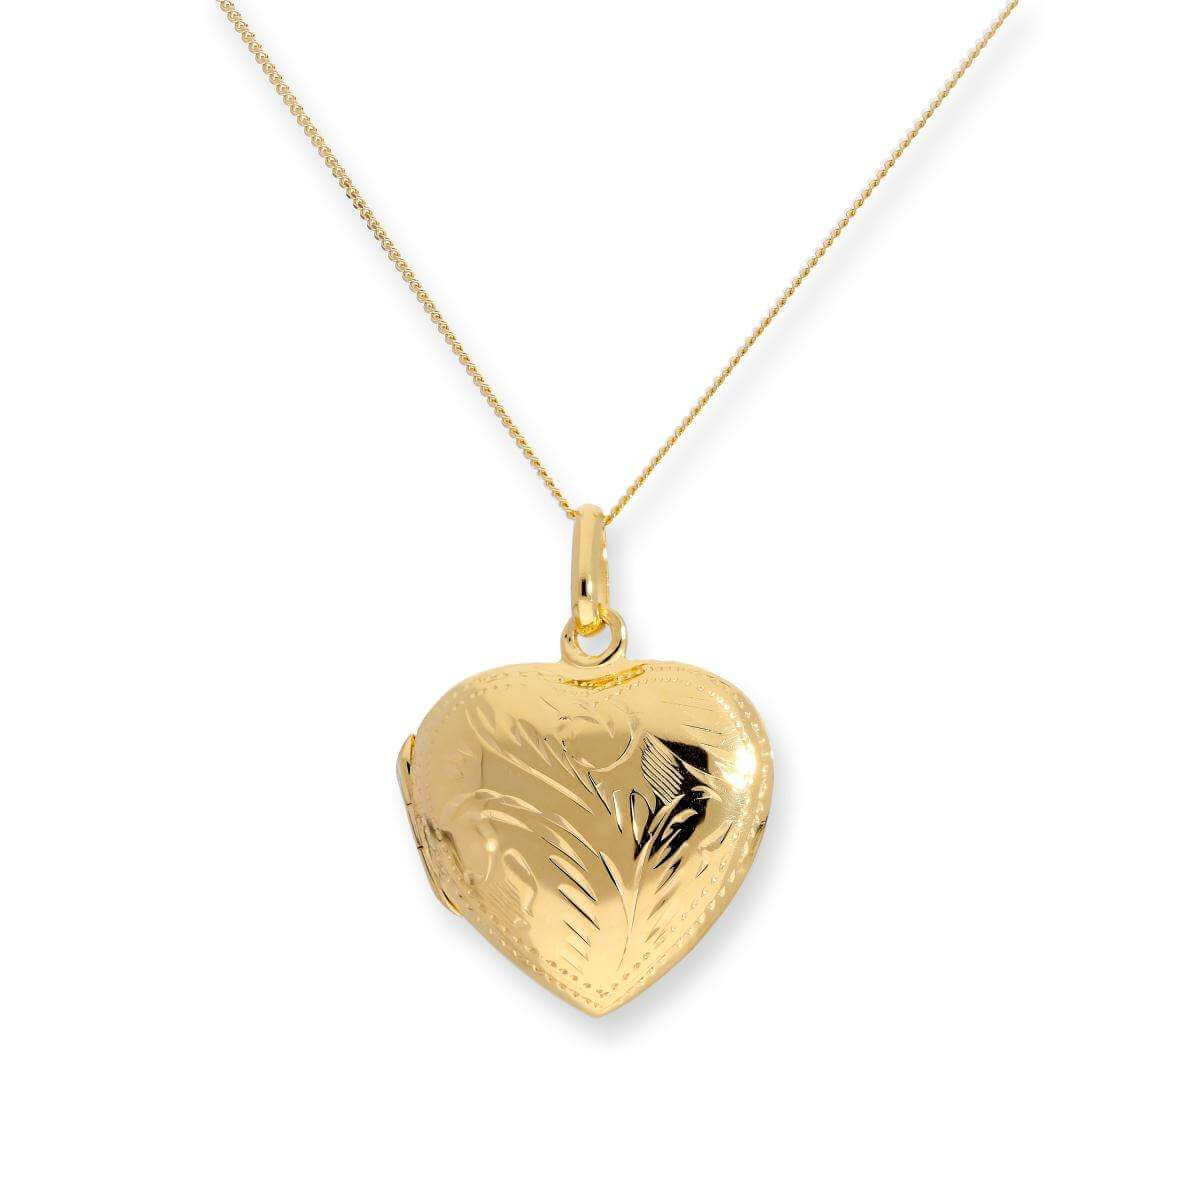 Gold Plated Sterling Silver Engraved Heart Locket on Chain 16 - 22 Inches